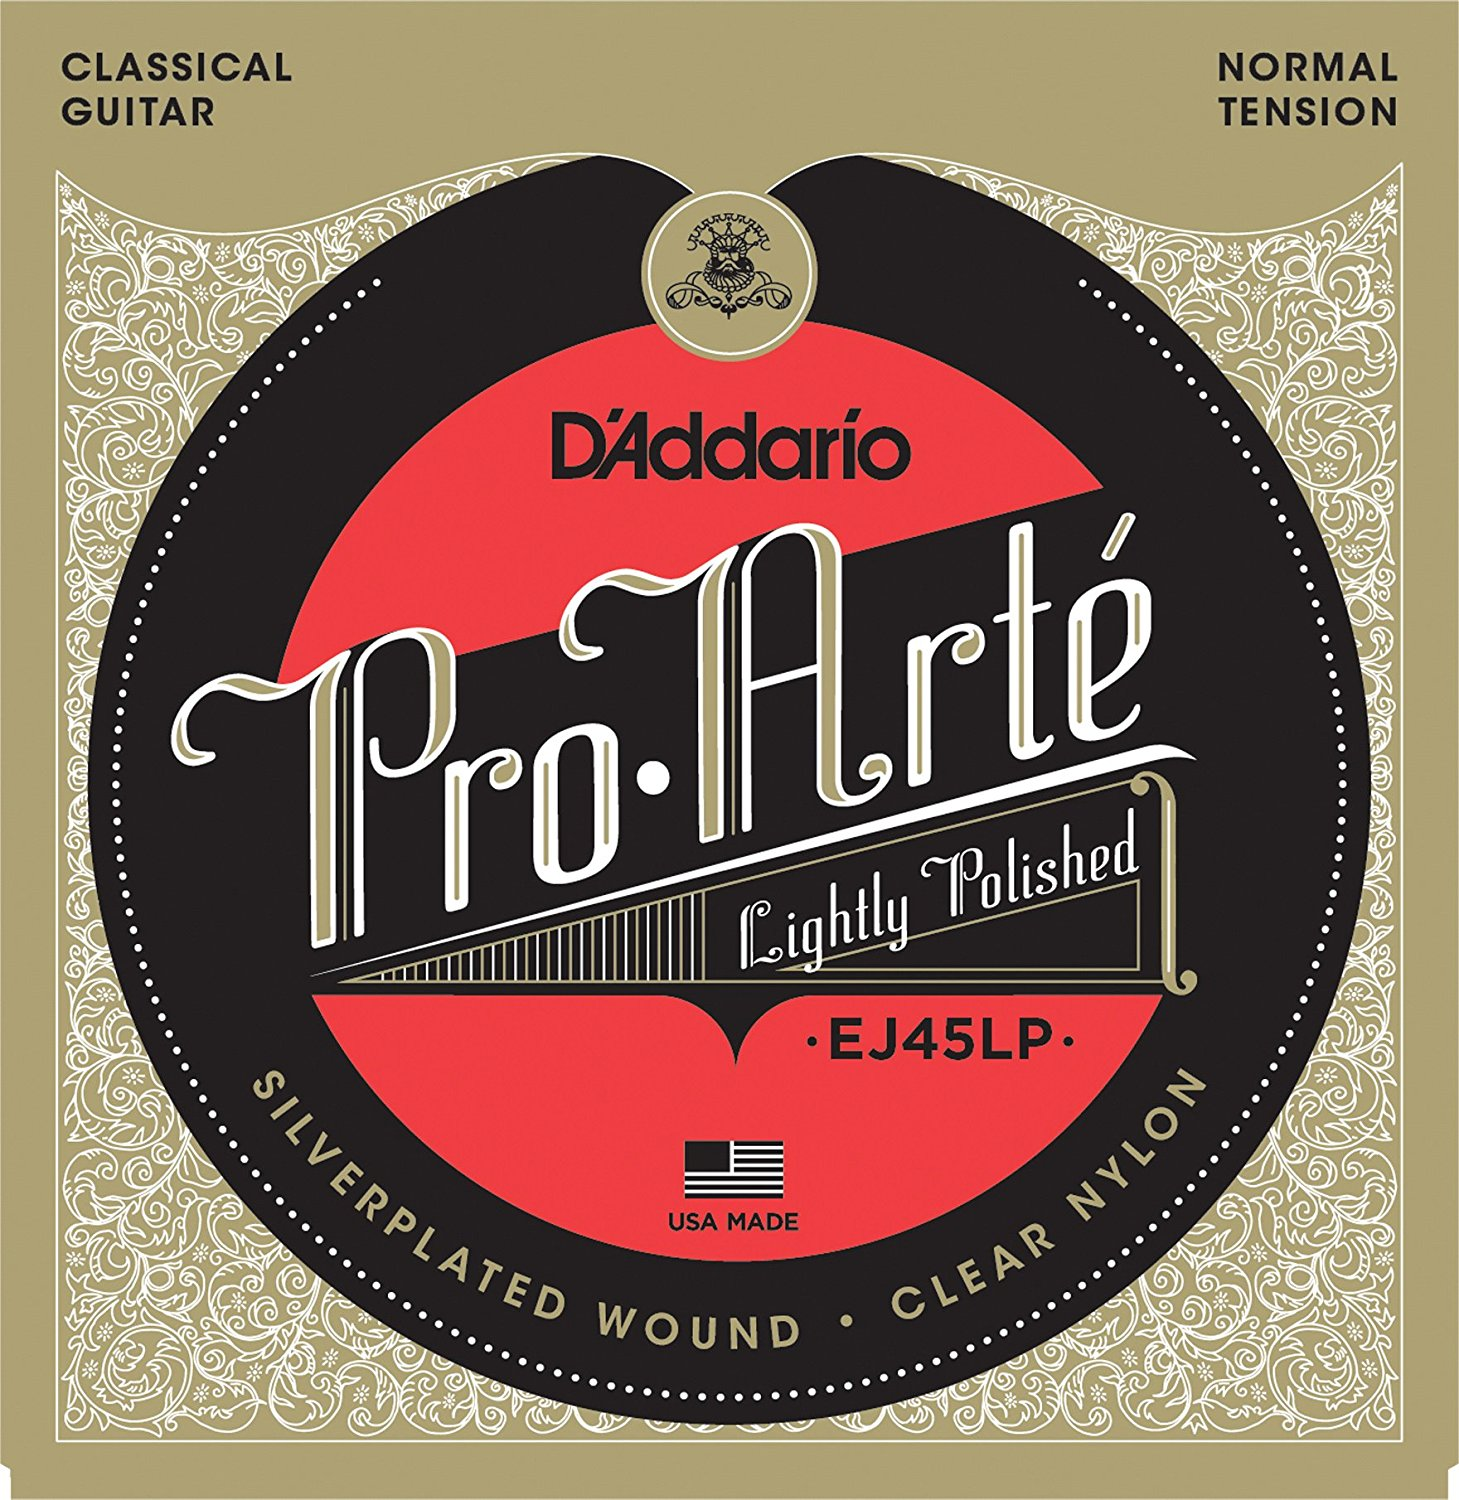 D'Addario EJ45LP Pro-Arte Composite Classical Guitar Strings, Normal Tension d addario ej46 pro arte nylon hard tension